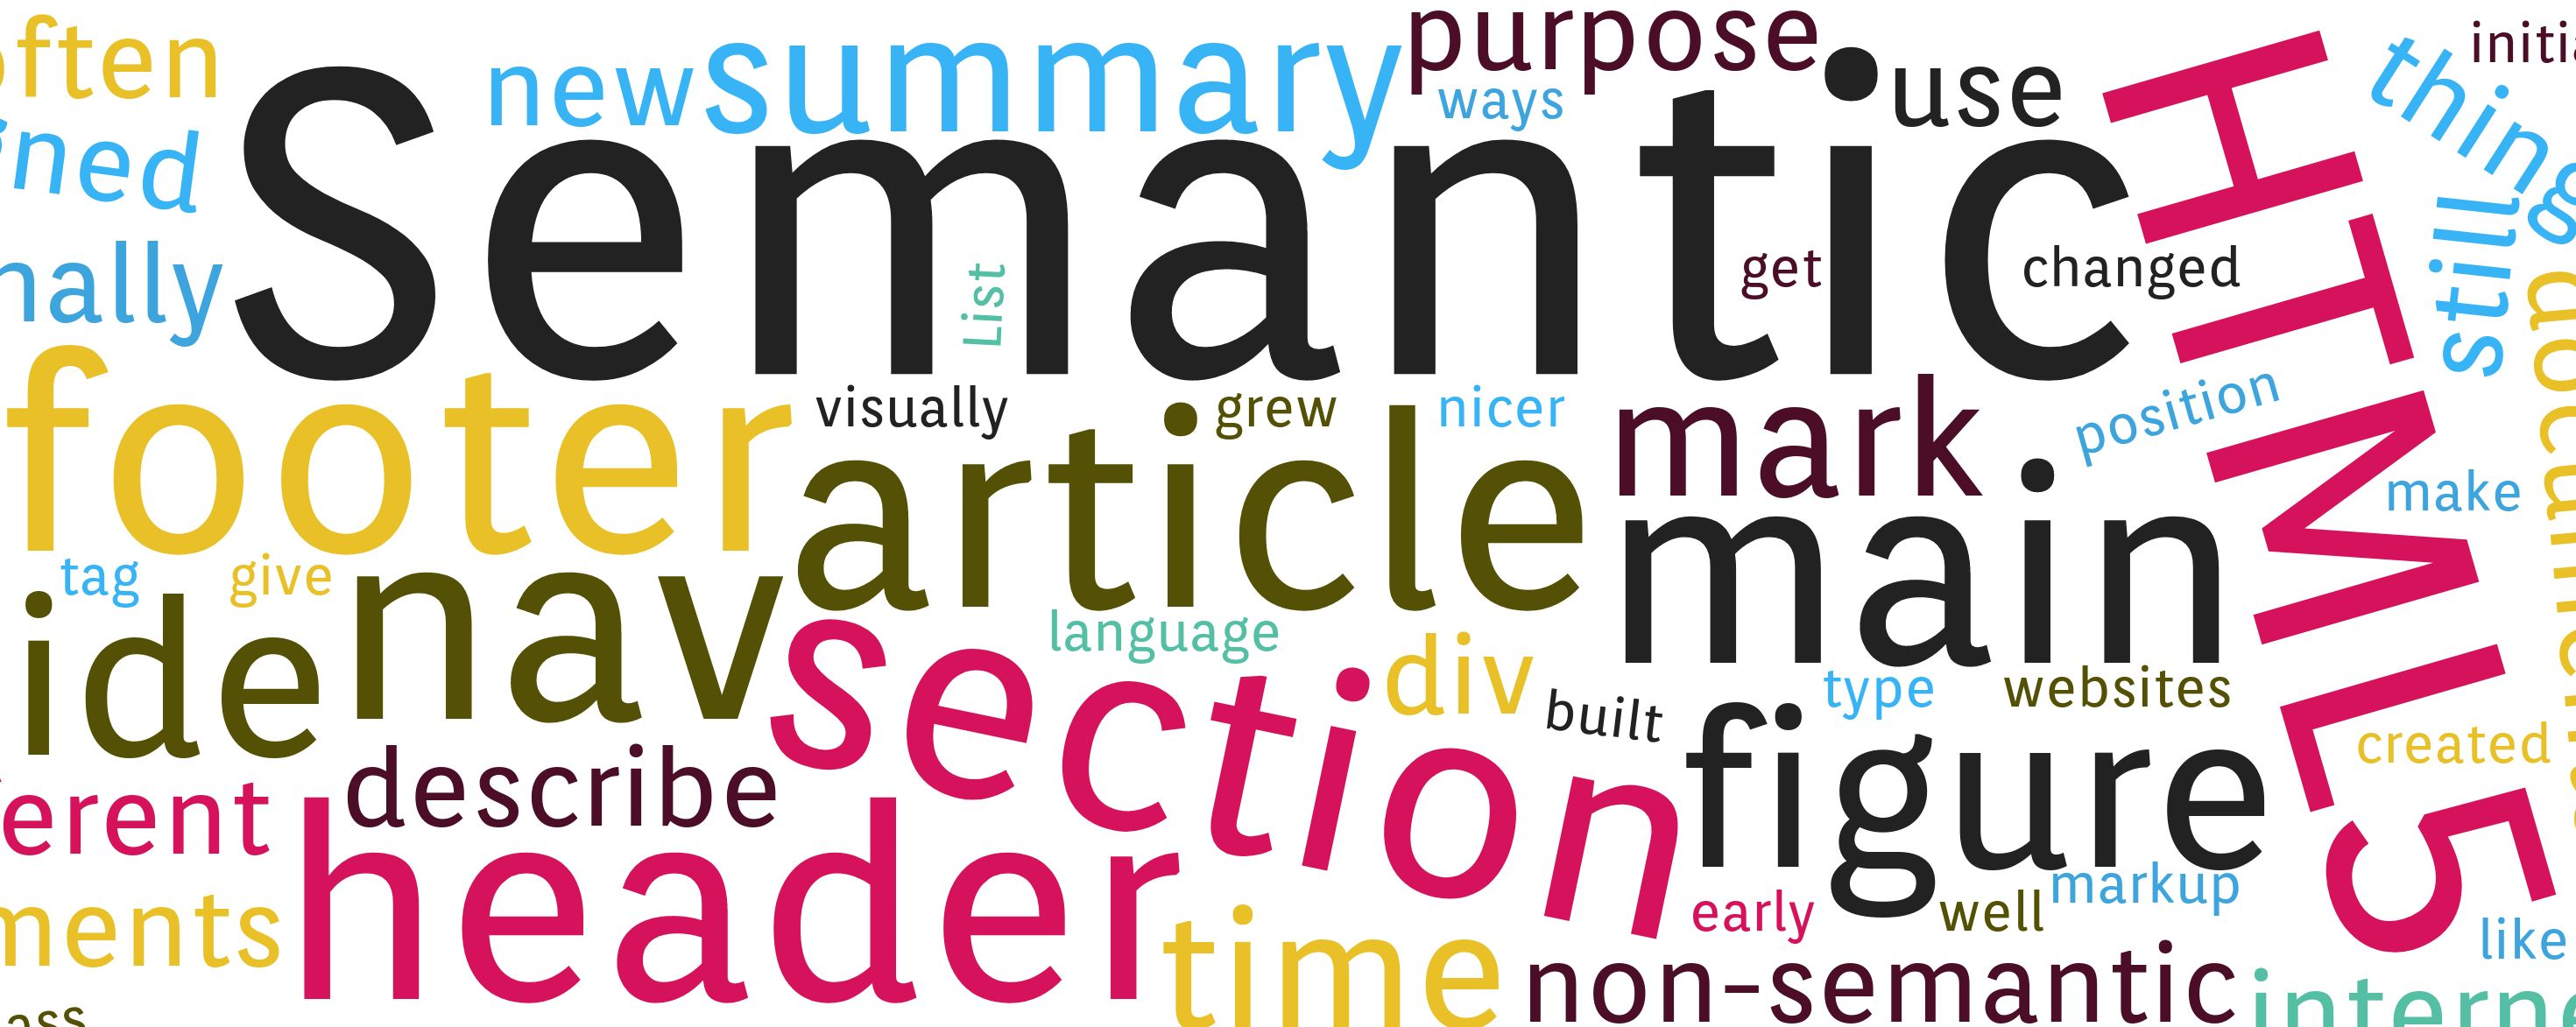 /how-to-write-semantic-html-dkq3ulo feature image